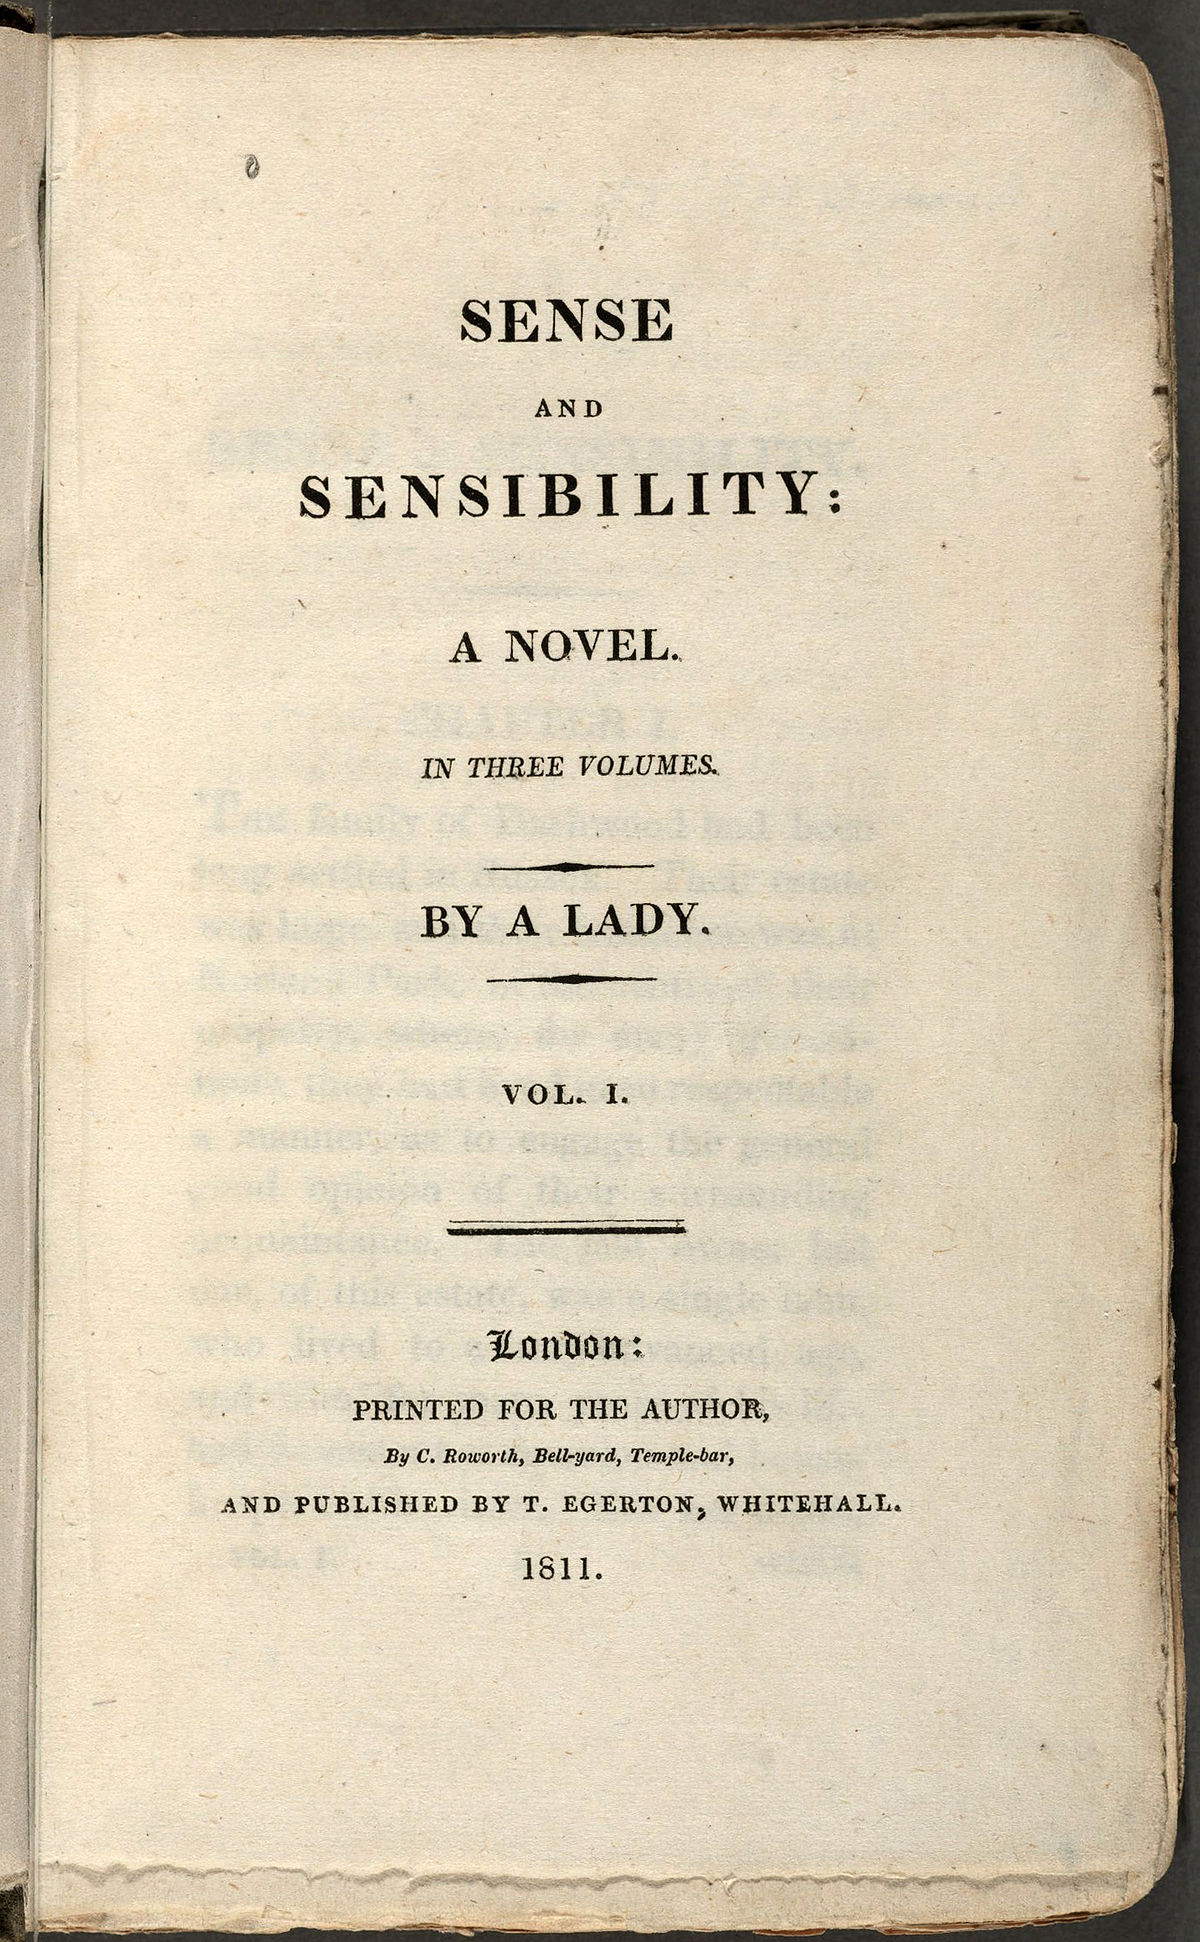 an analysis of themes in sense and sensibility by jane austen In jane austen's novel sense and sensibility, engagements and consequent marriages occur contrary to expectations this is because all the clues and evidence held important by society and seen as indicative of engagement are ambiguous at best, if not entirely baseless and reliant on mere supposition.